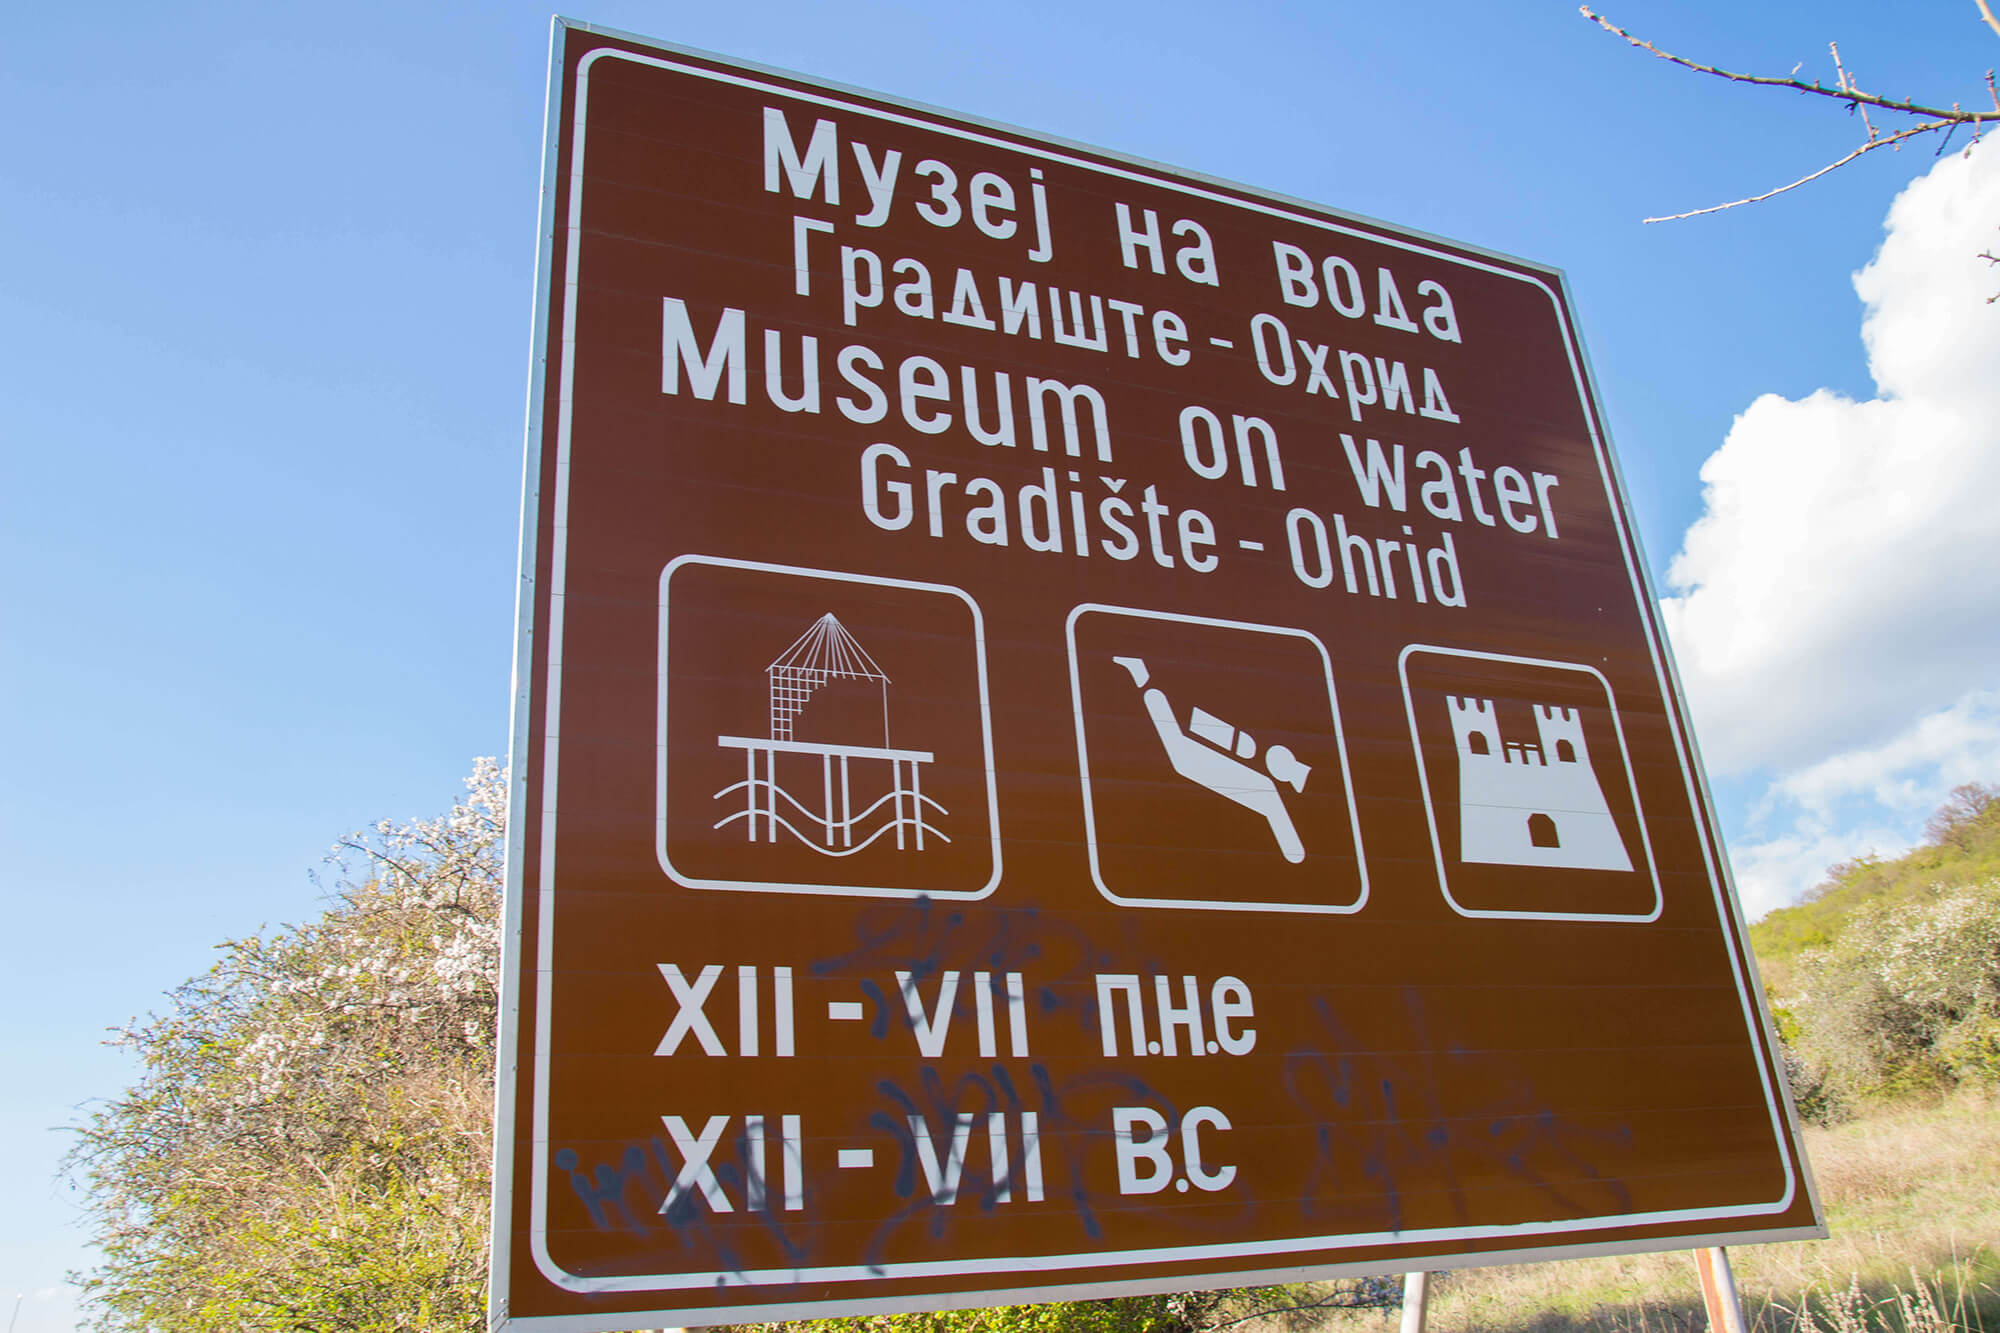 The Museum On The Water Road Sign in Lake Ohrid Macedonia